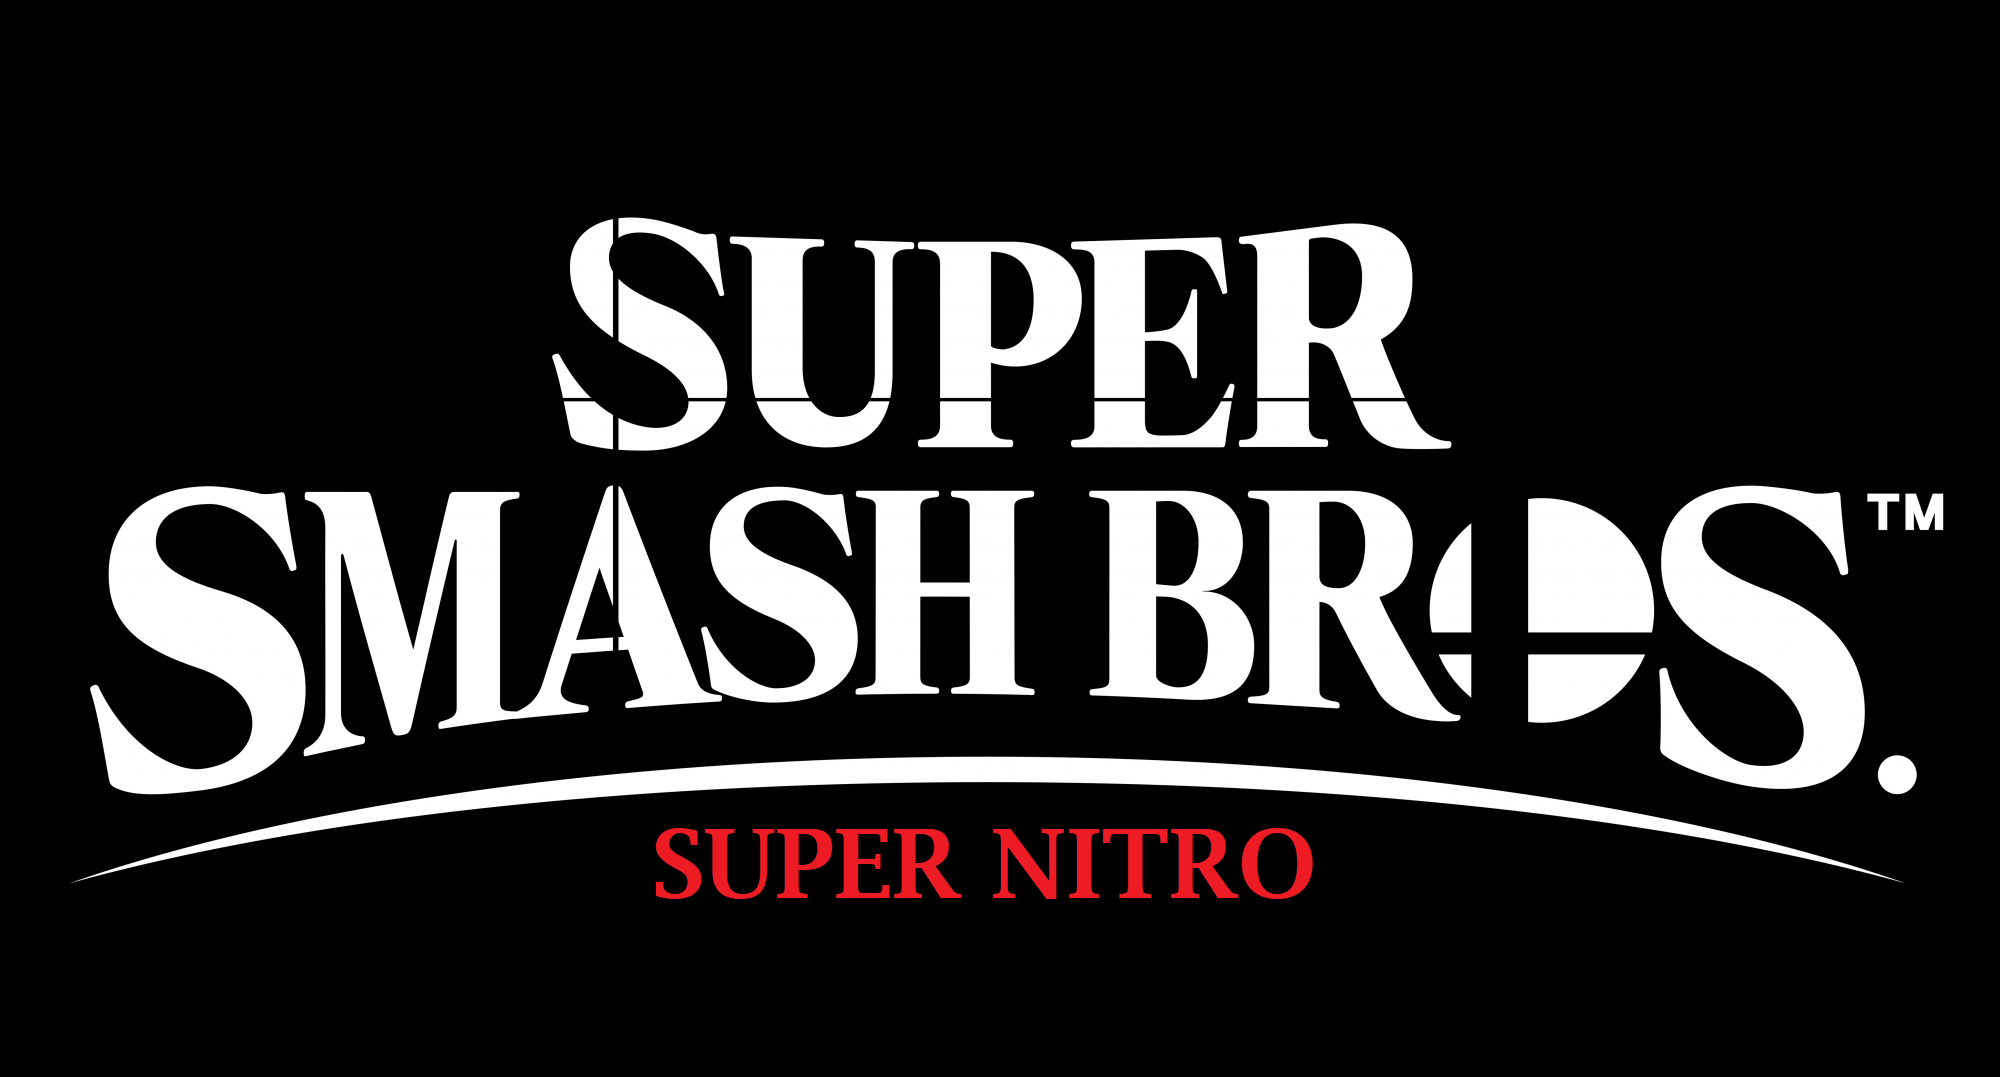 Super Smash Bros. Super Nitro